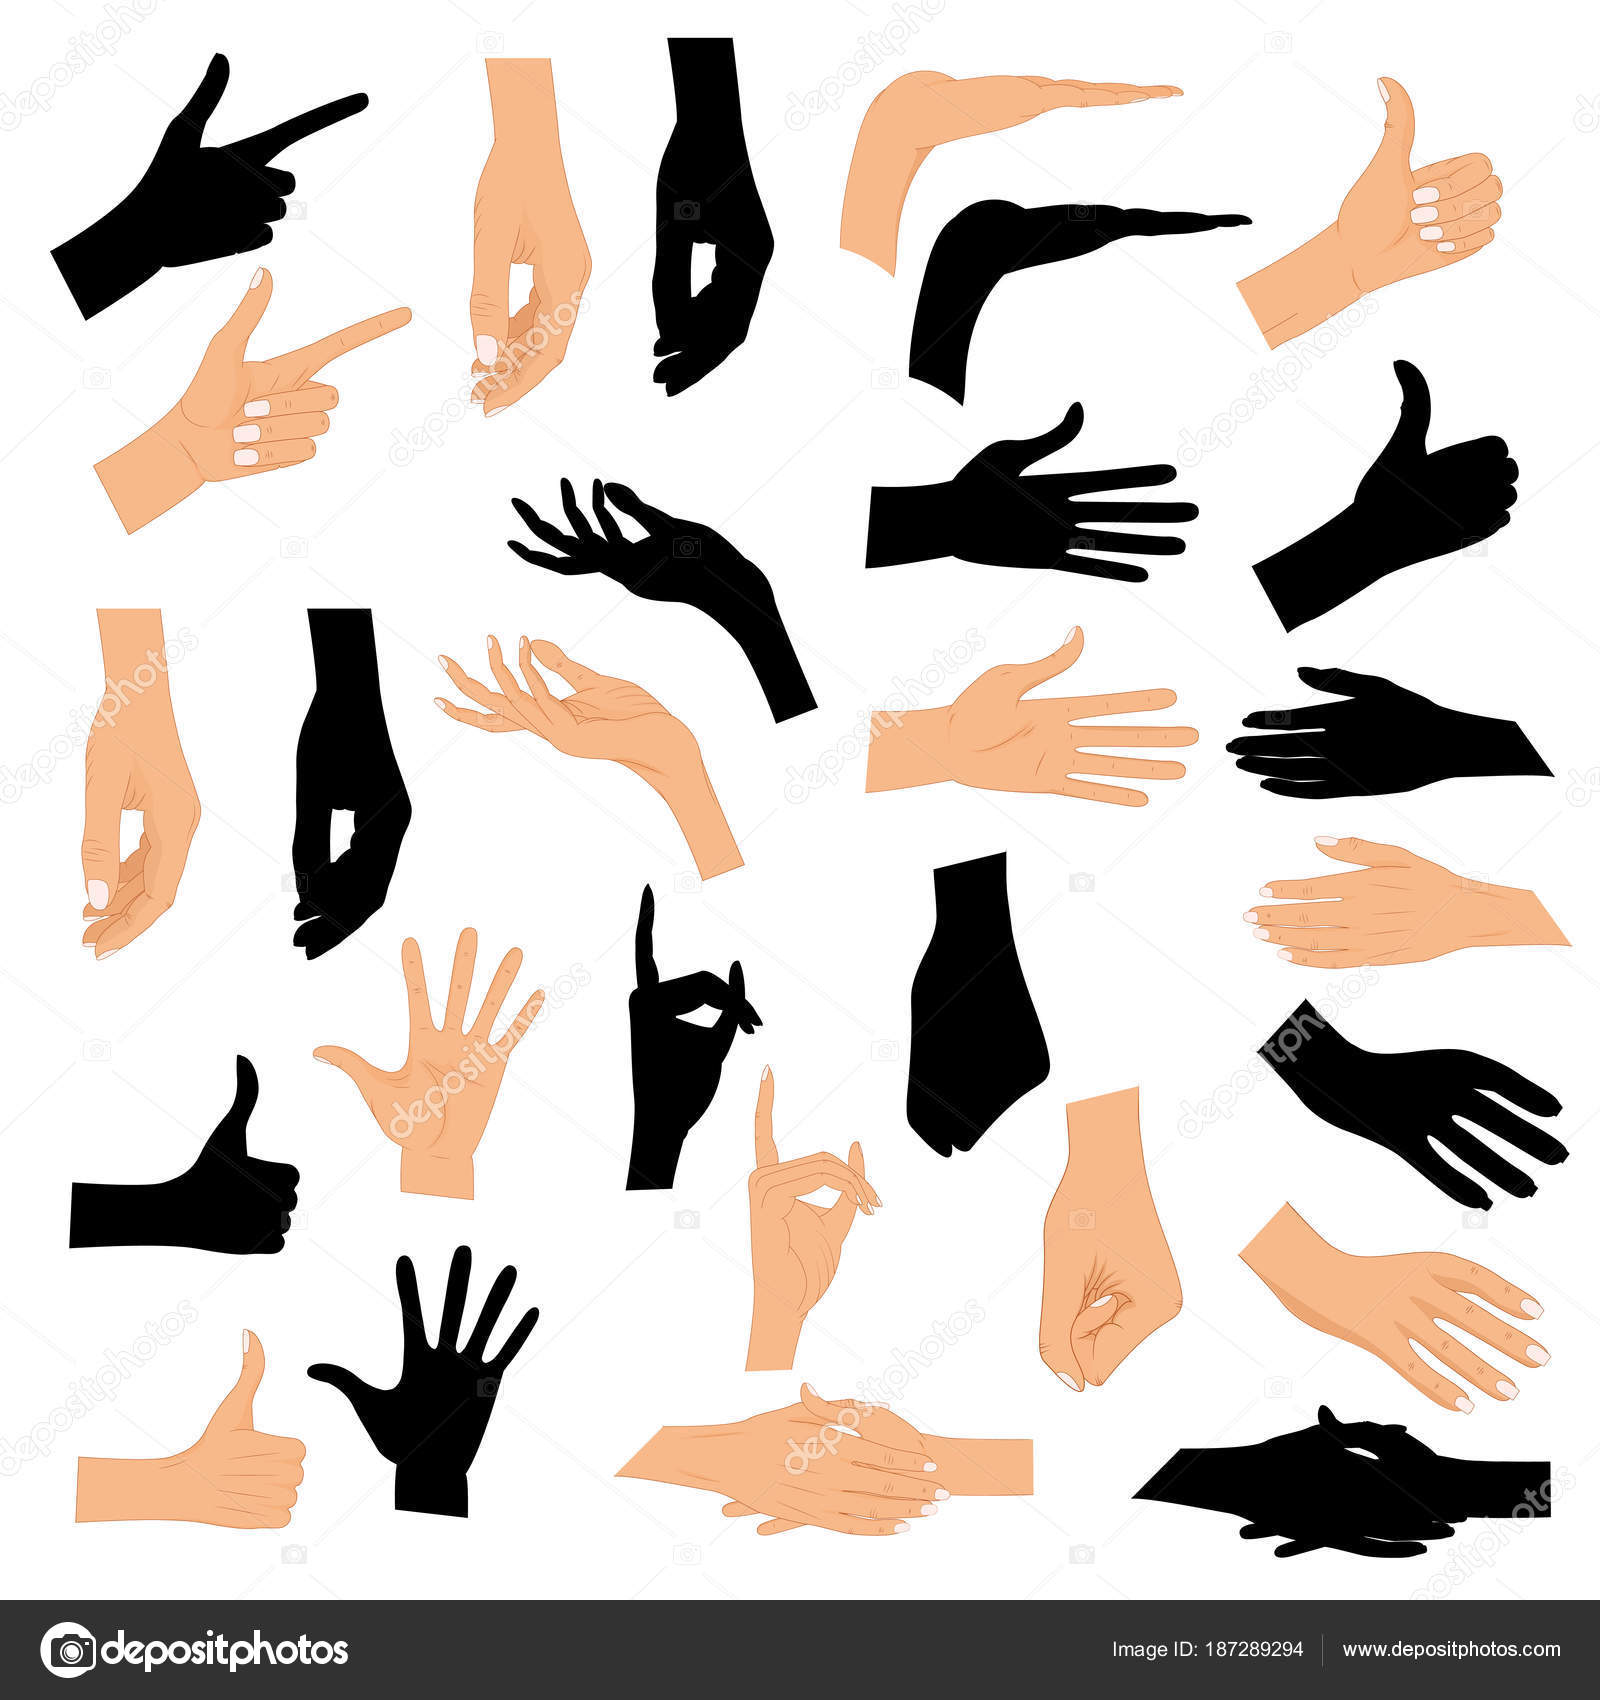 Set Hands In Different Gestures With A Black Silhouette Isolated On